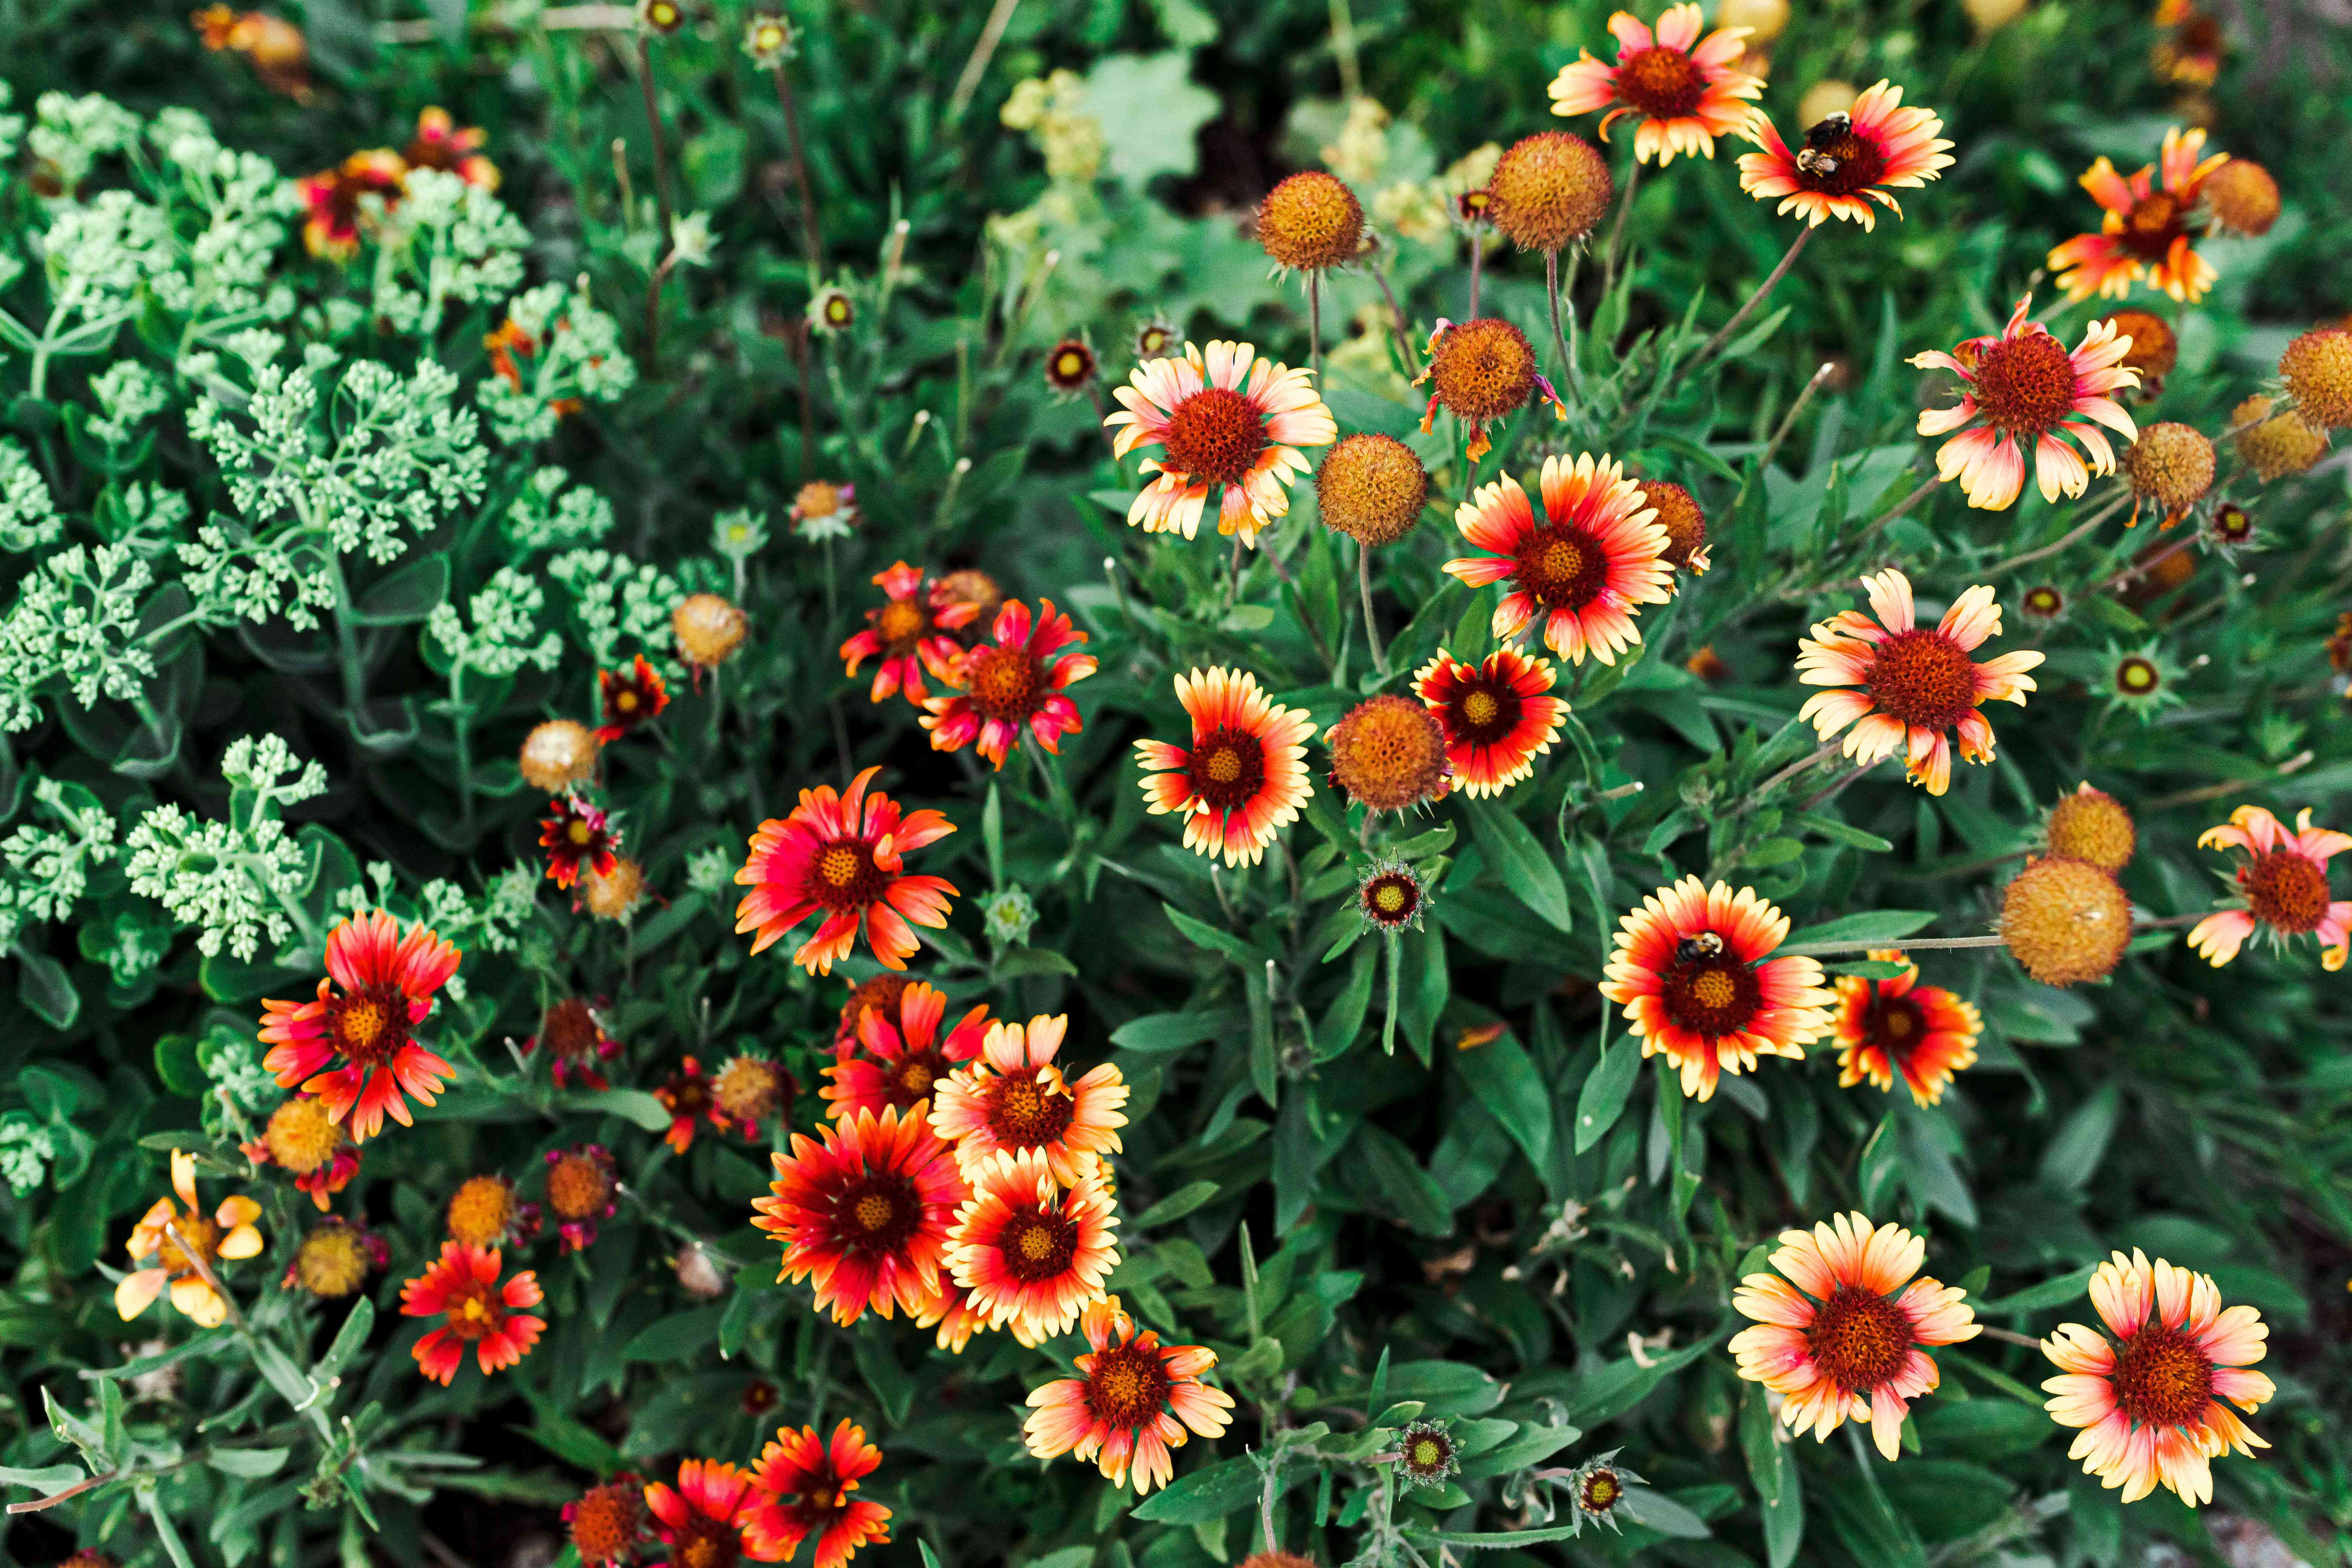 Blanket flowers with yellow and bright orange colored petals in garden